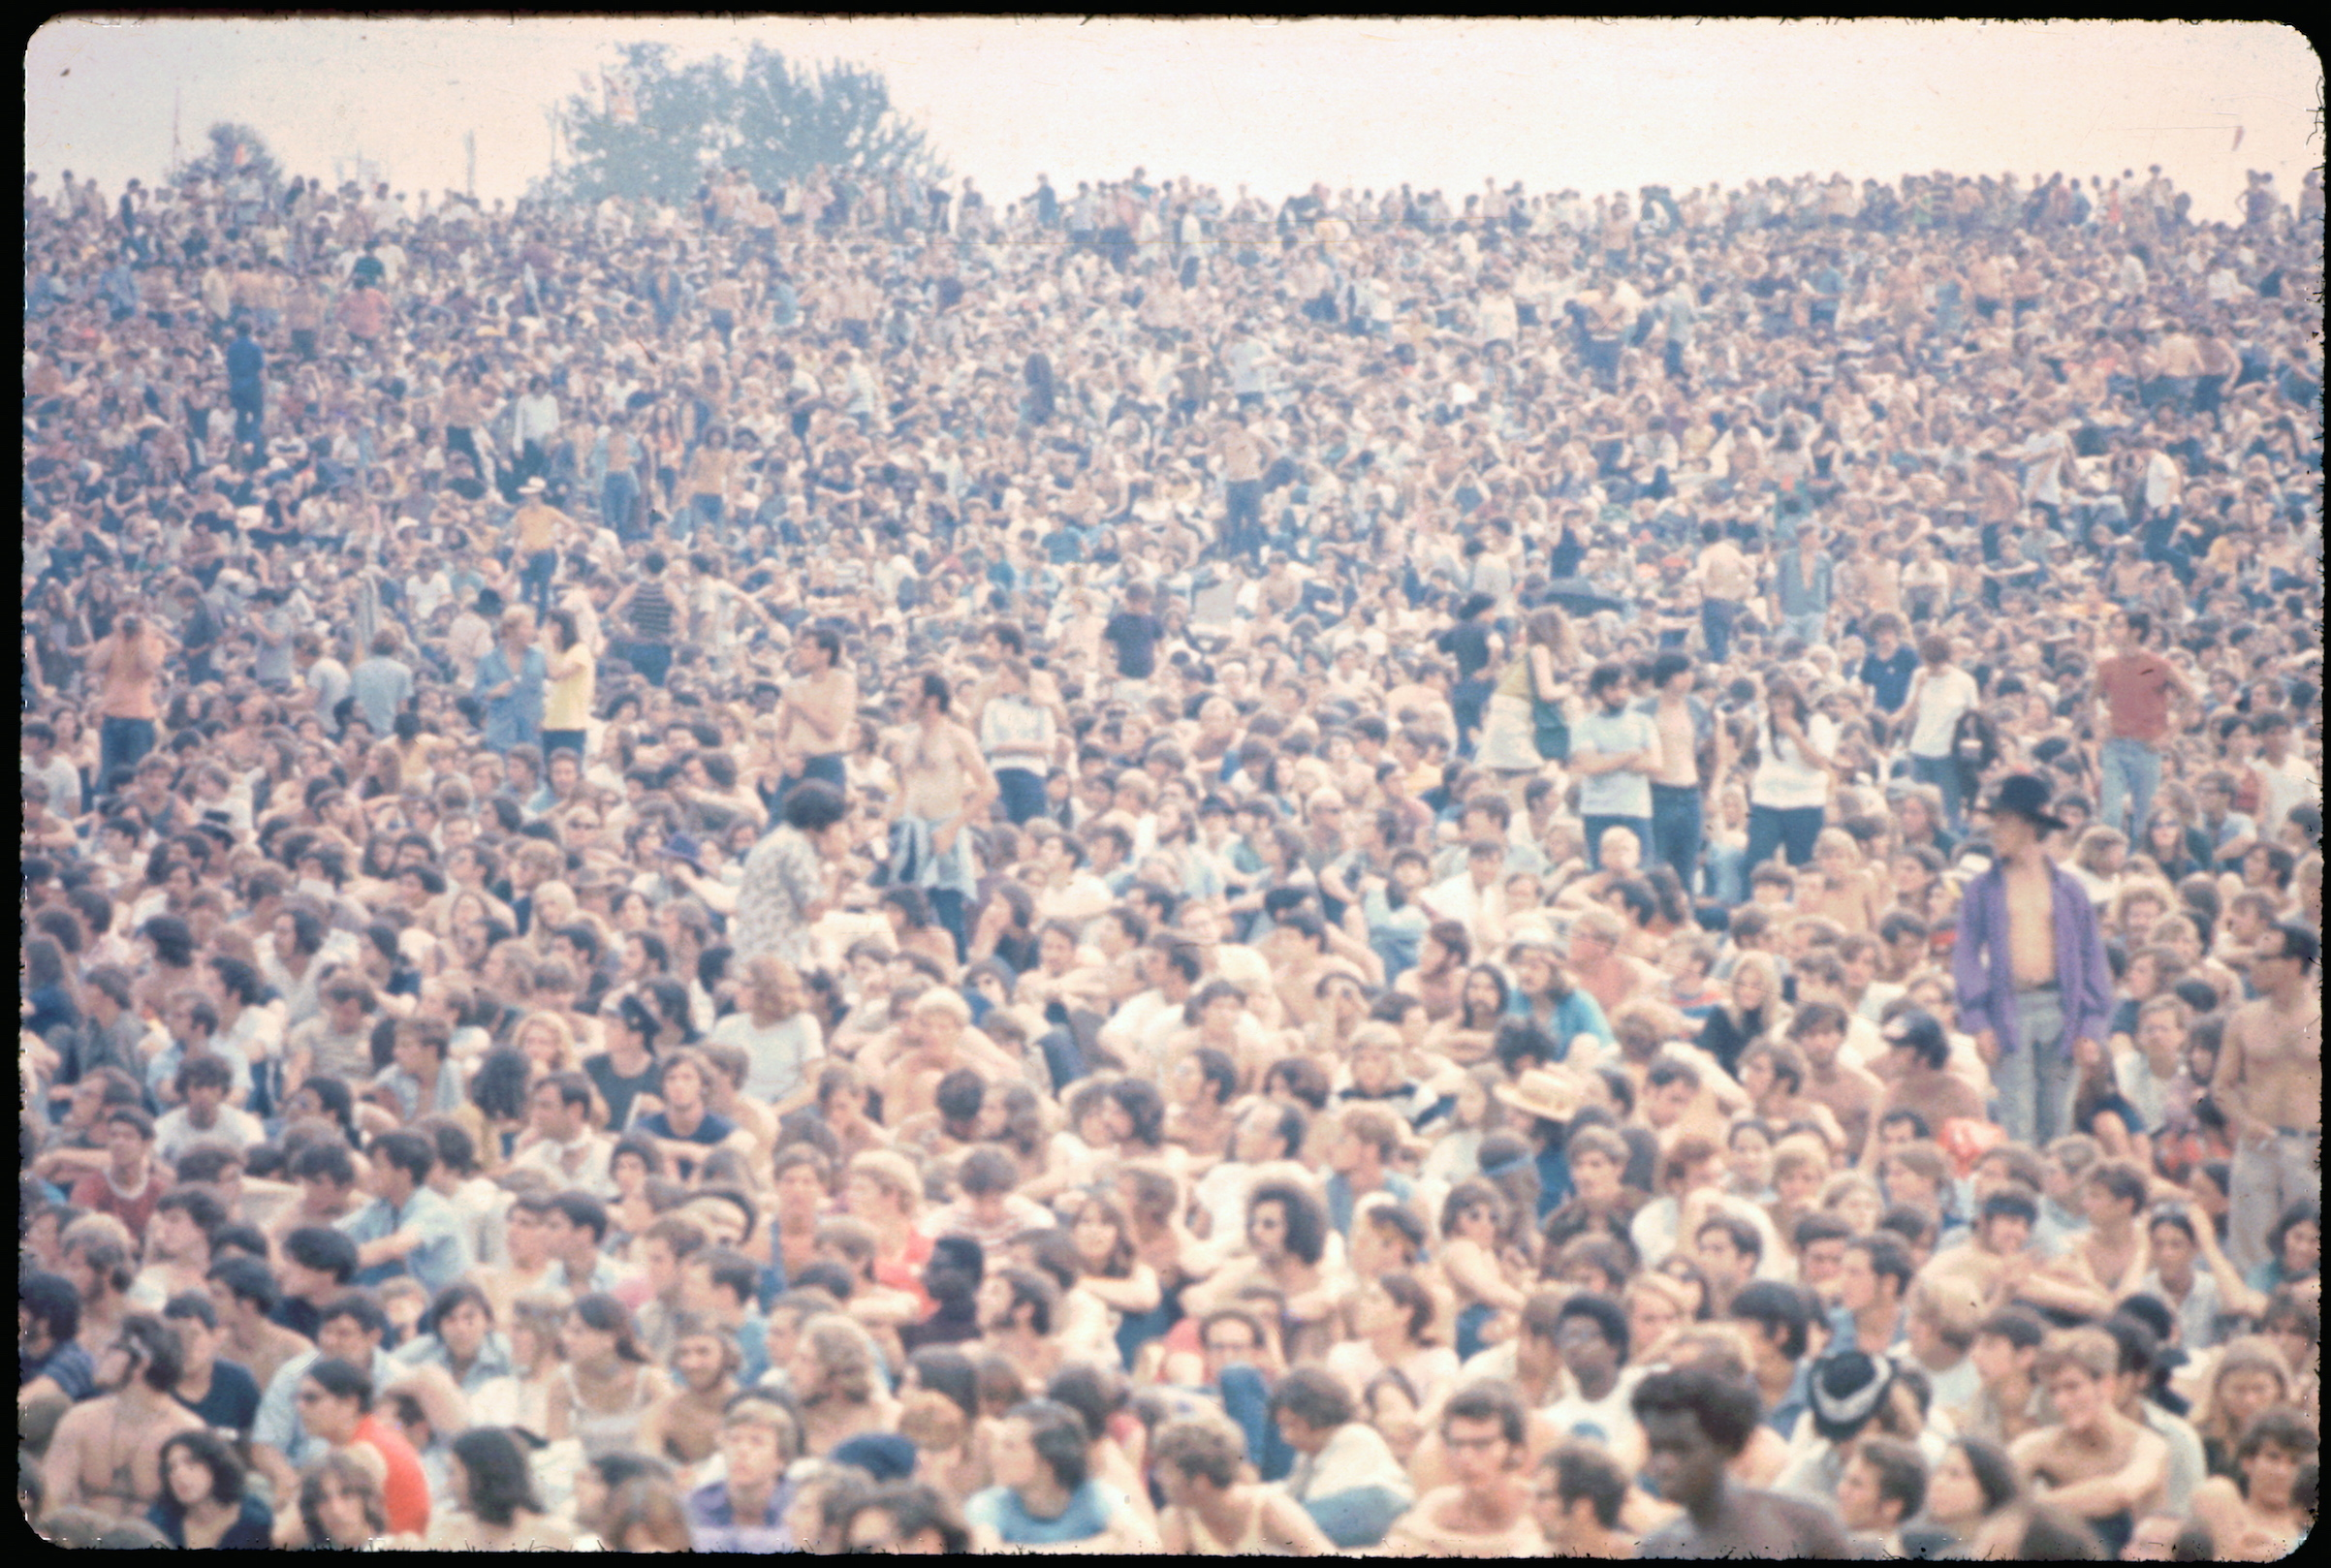 Woodstock crowd seen from the main stage, 1969